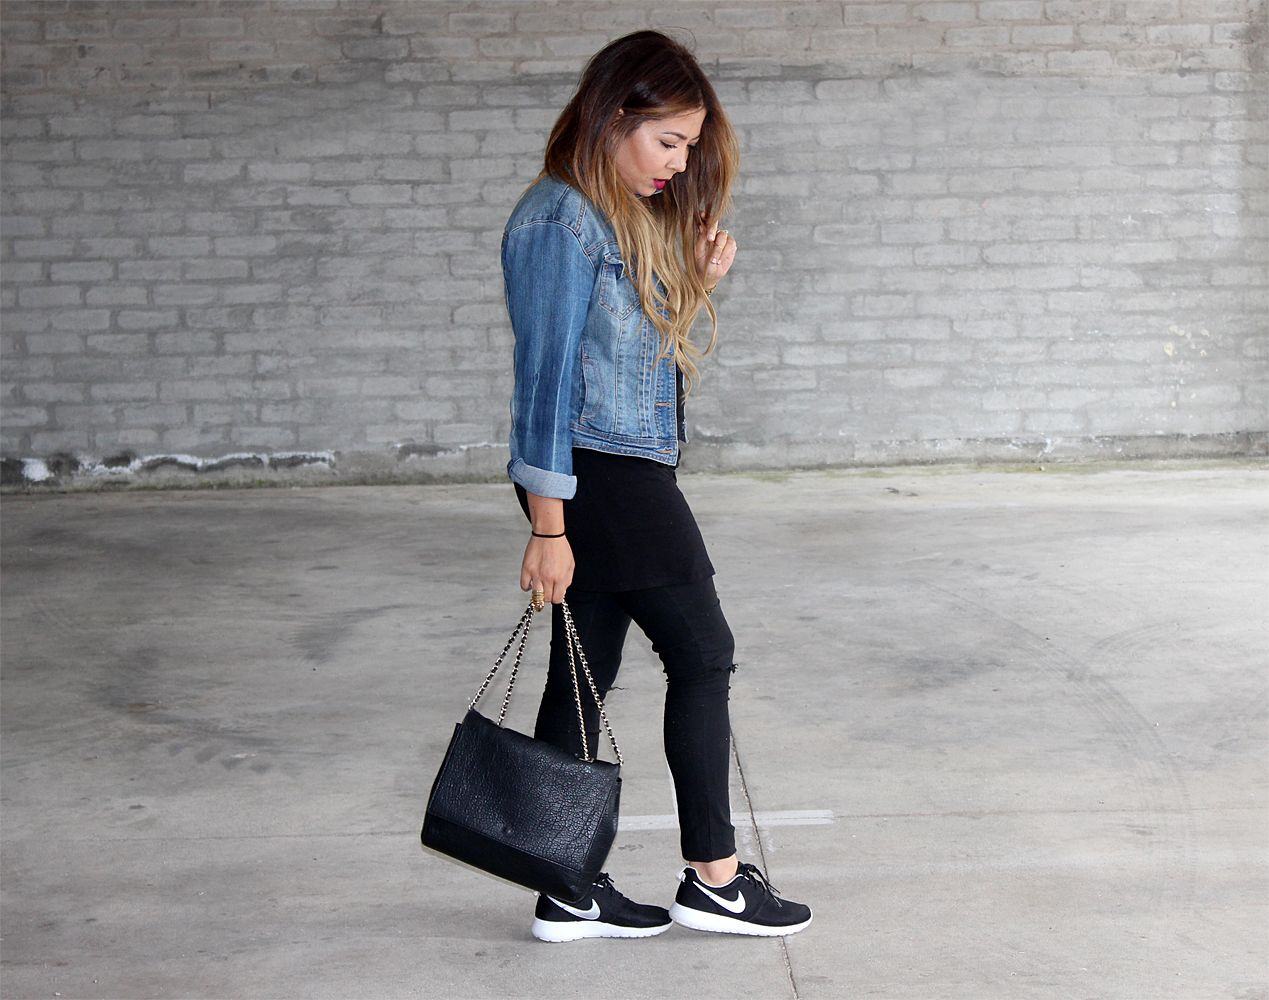 nike roshe run-Black ripped jeans Denim Jacket. Simple and Chic 79e1f4957